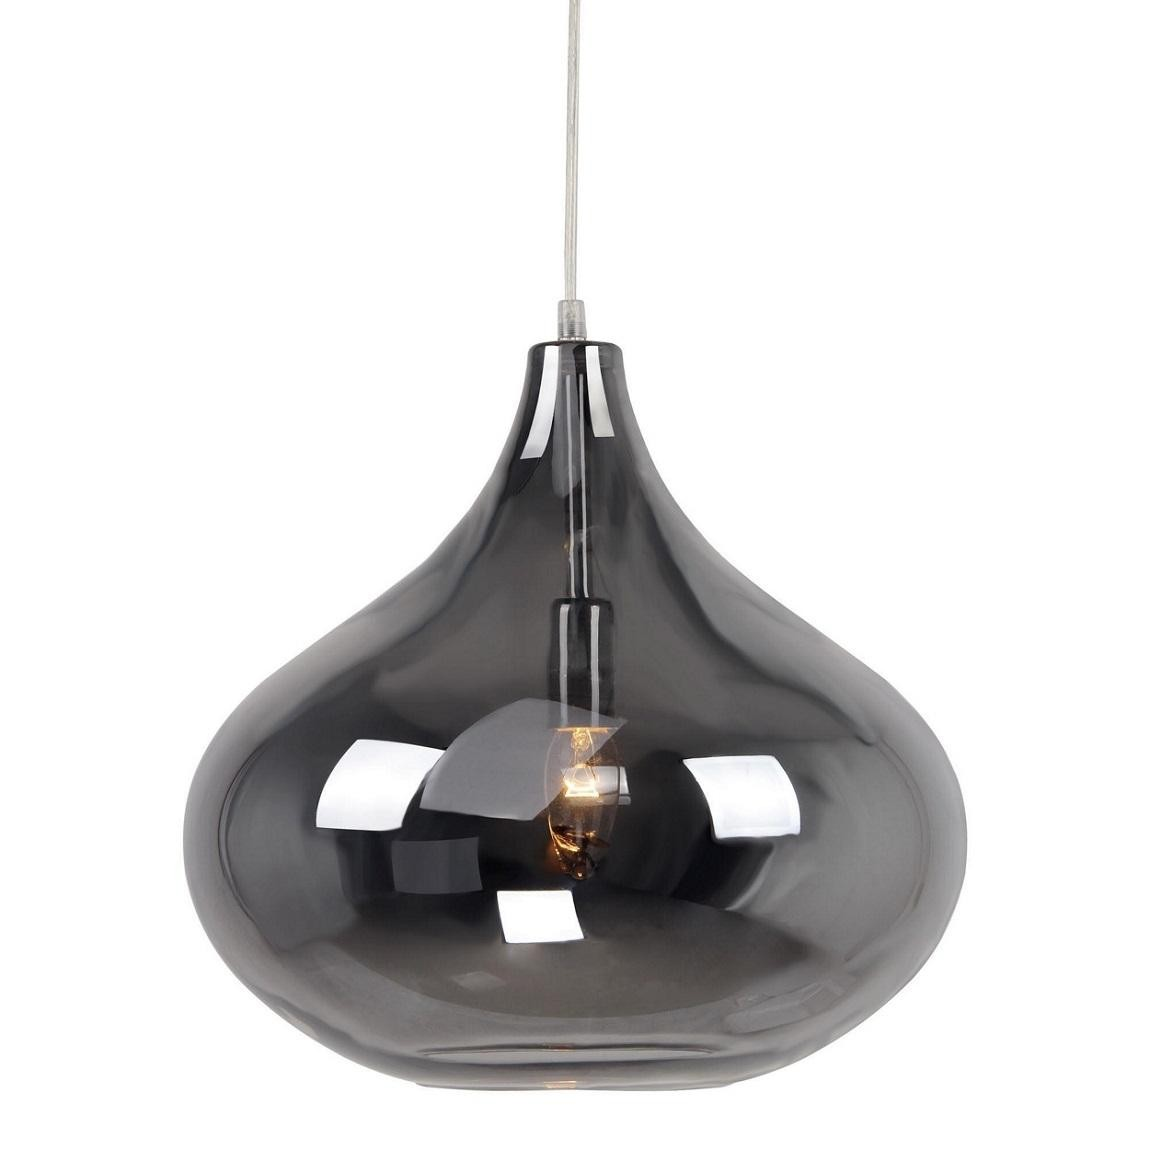 Home-Collection-Claire-Ceiling-Light.jpg